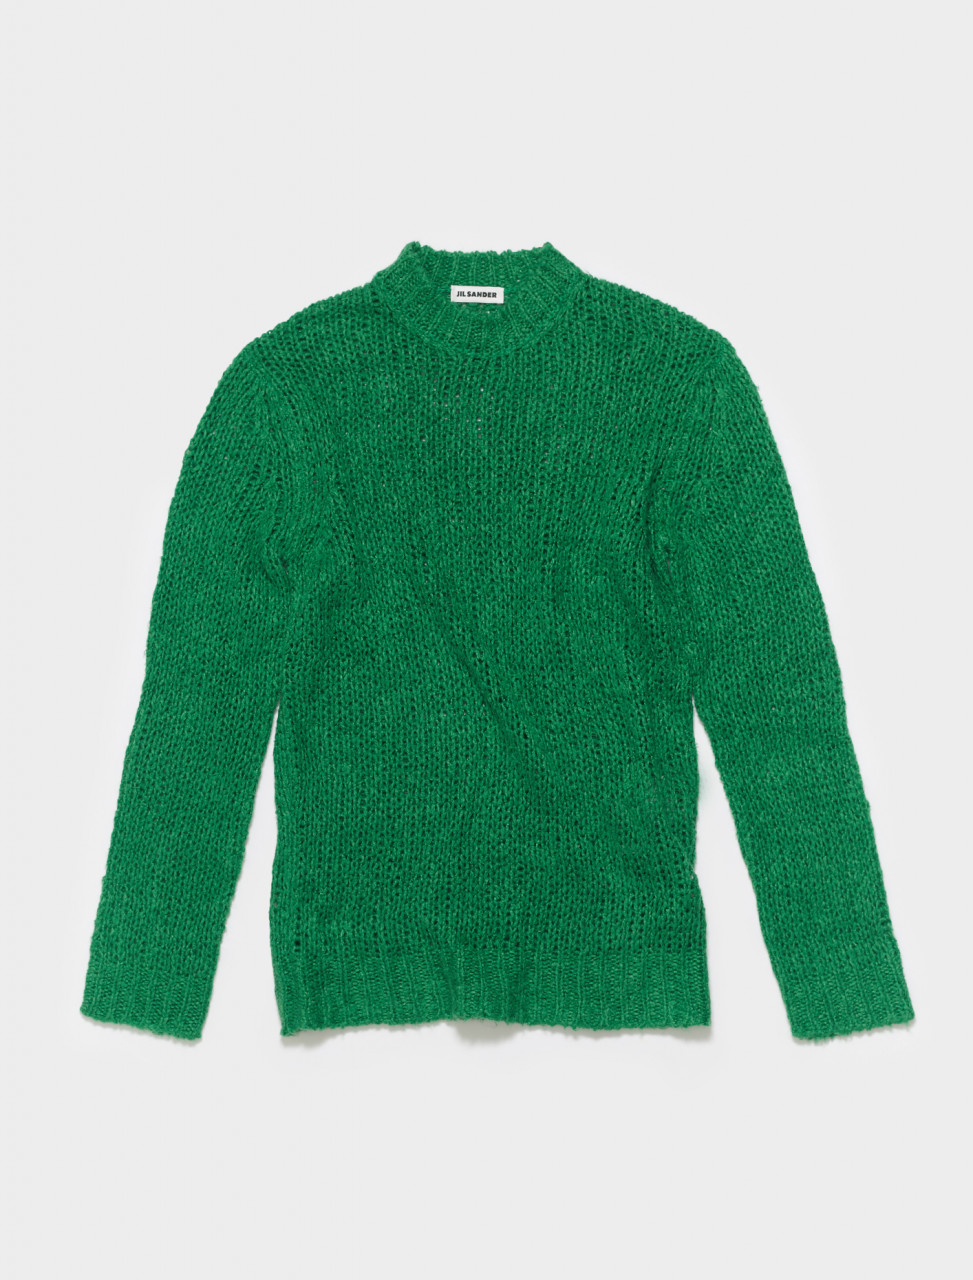 JSMS751042-MSY32008-314 JIL SANDER CHUNKY TEXTURED KNIT SWEATER IN MEDIUM GREEN